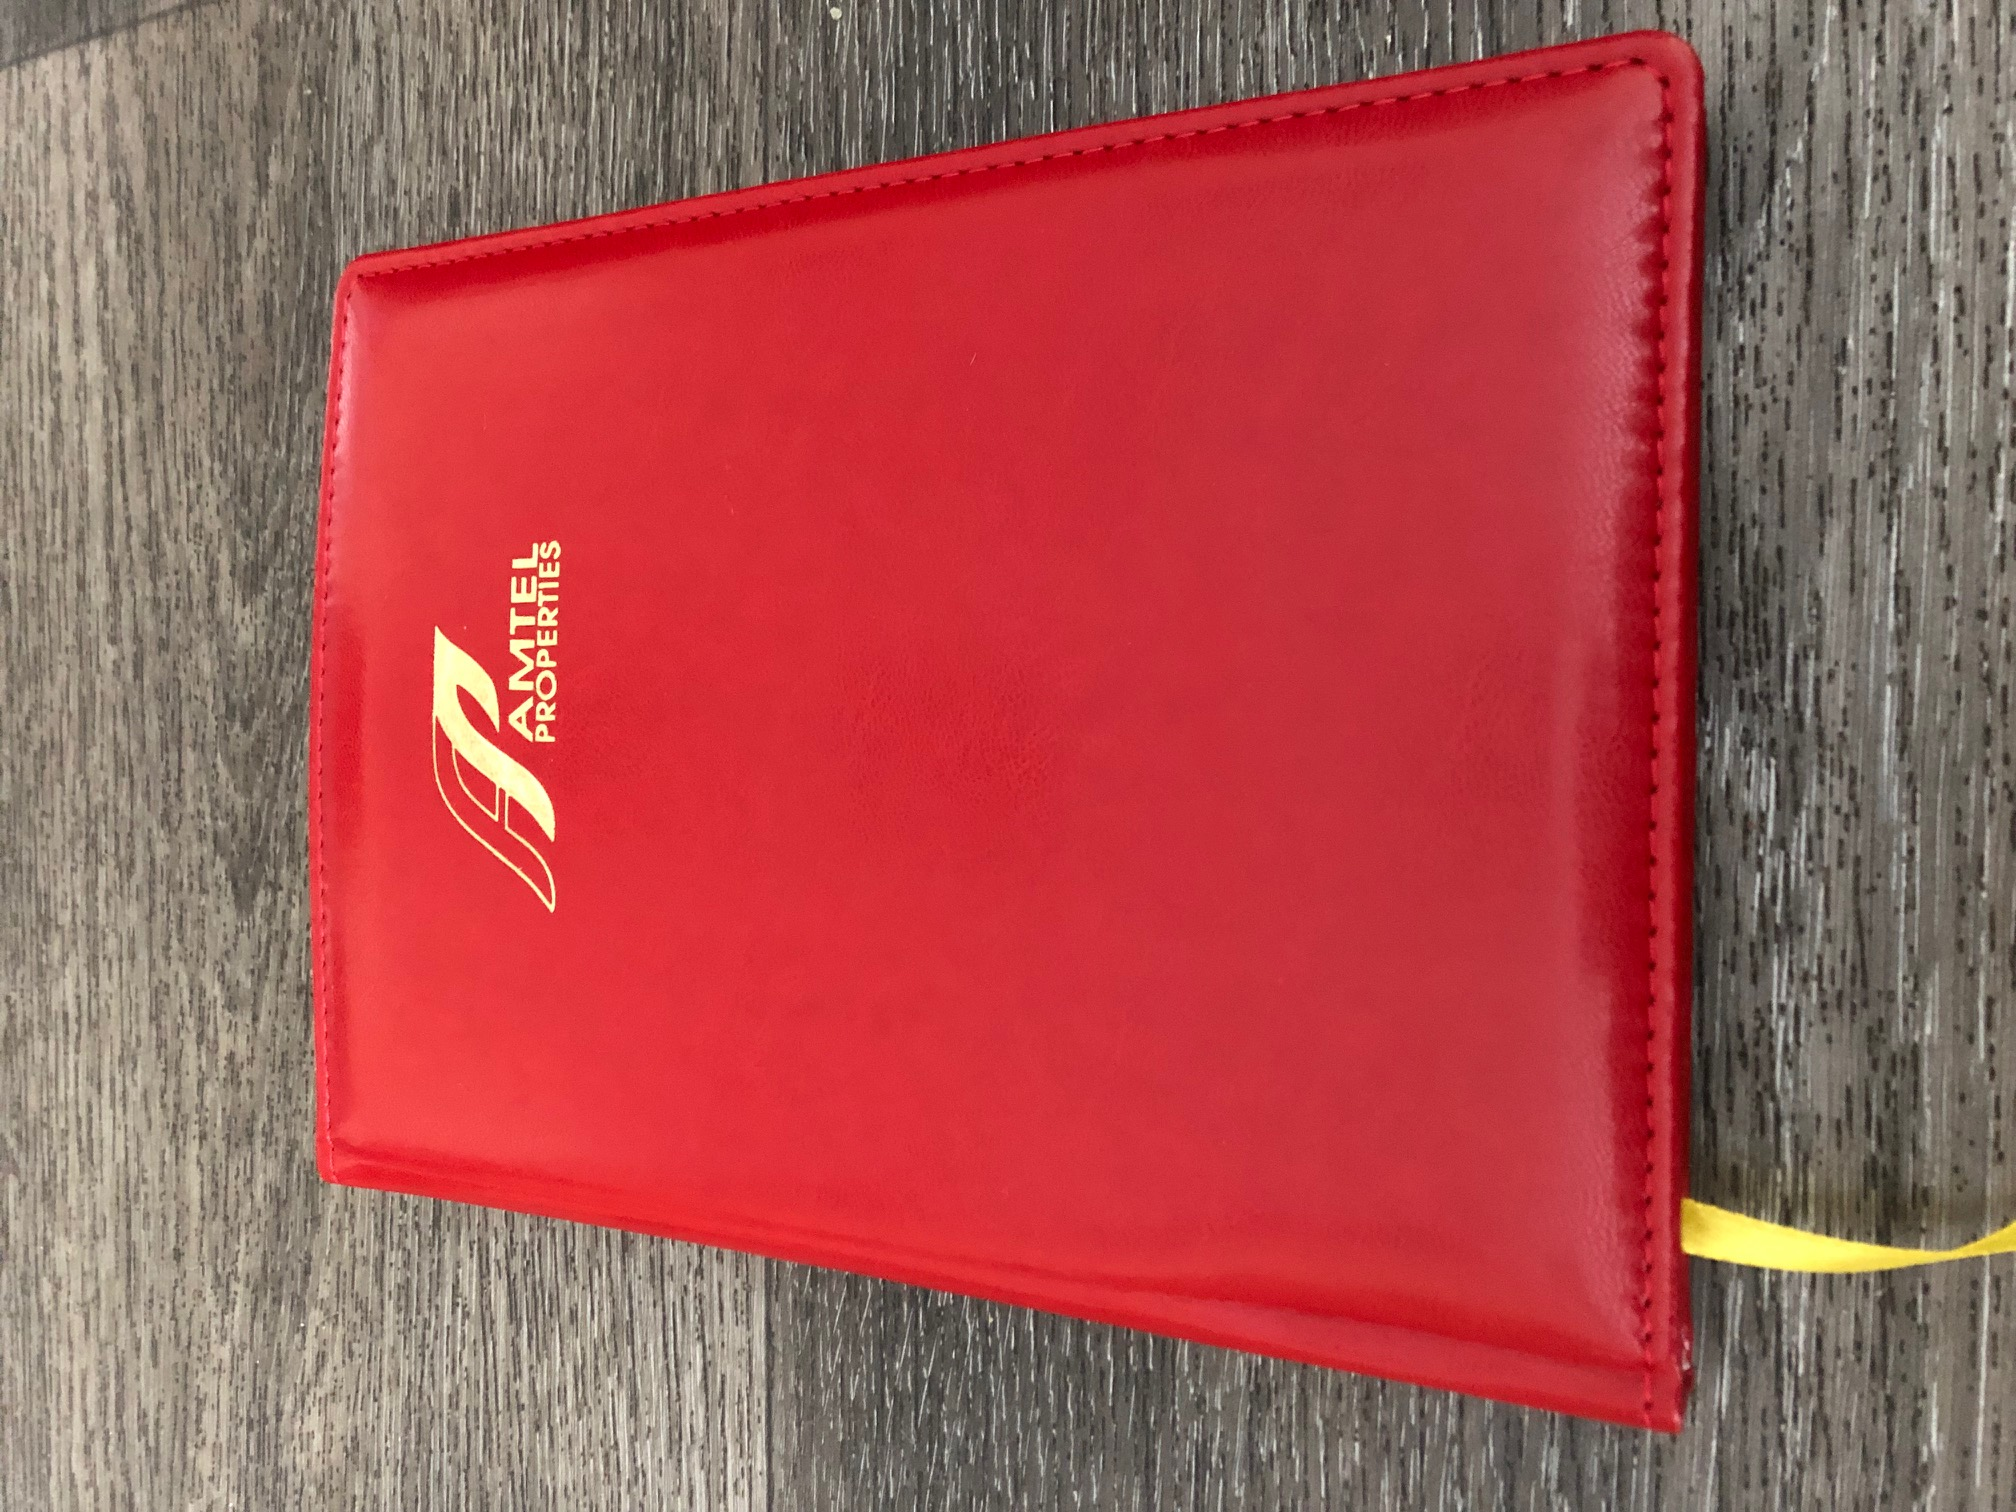 Corporate diaries with logo on cover & pages